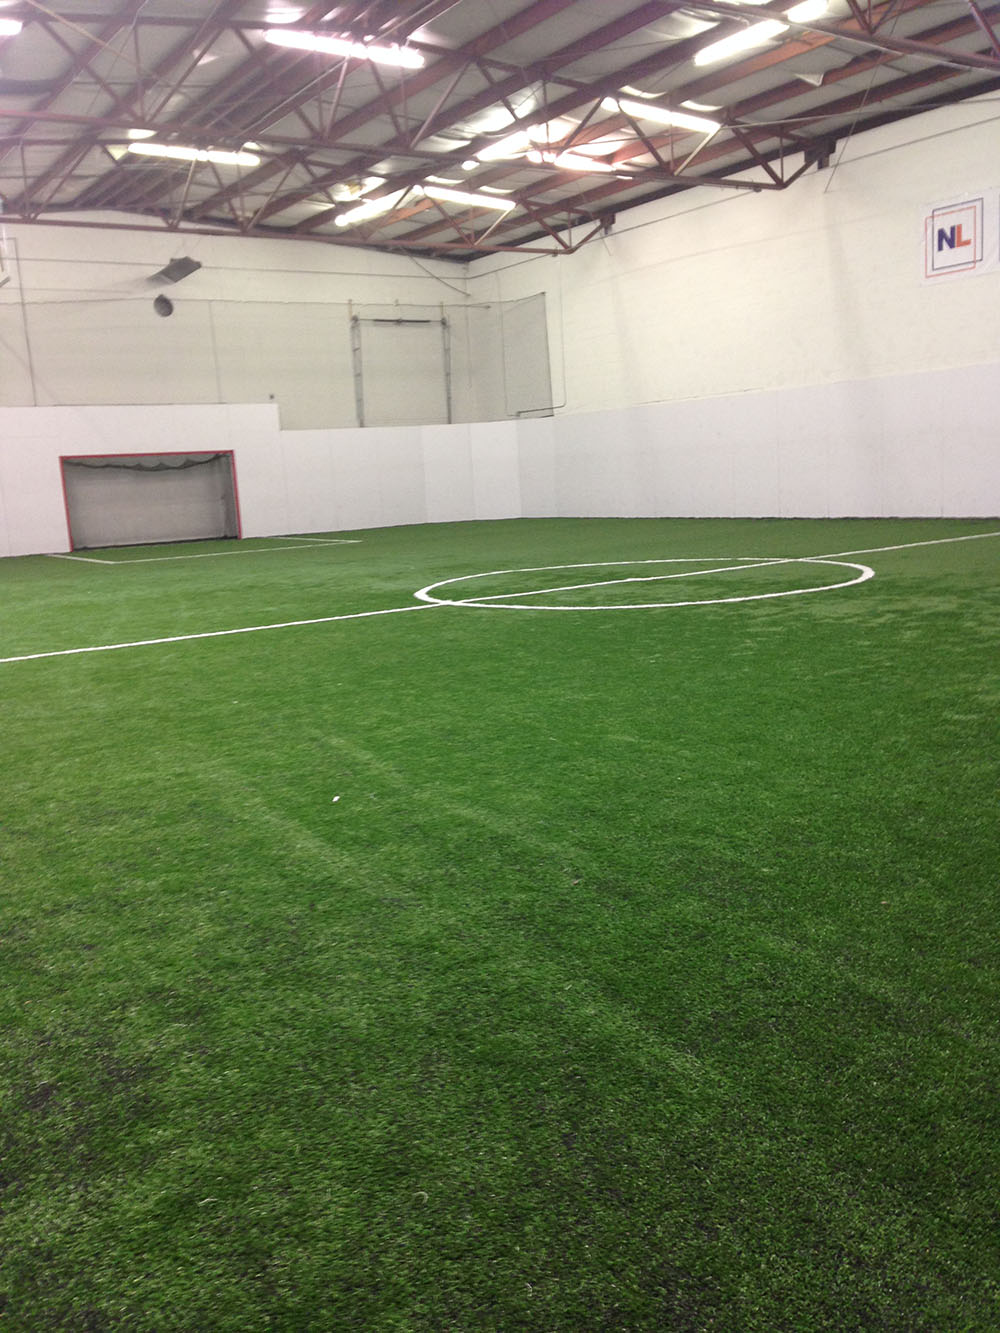 This Indoor Turf Field At Next Level Athletic Development Center Is The Site Of All Futsal